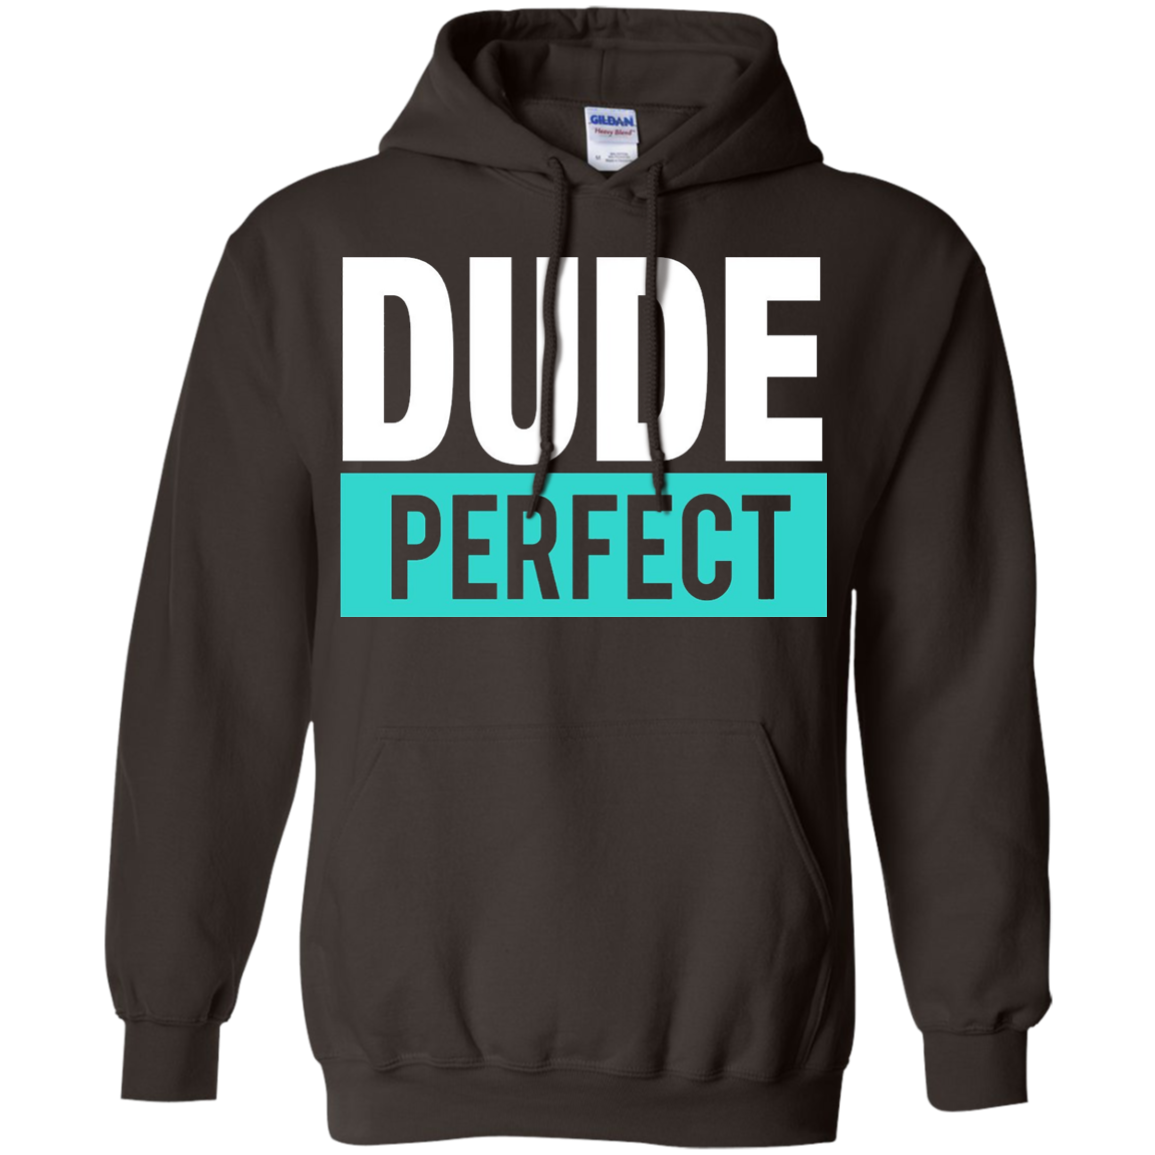 Dude Shirt Perfect Shirts